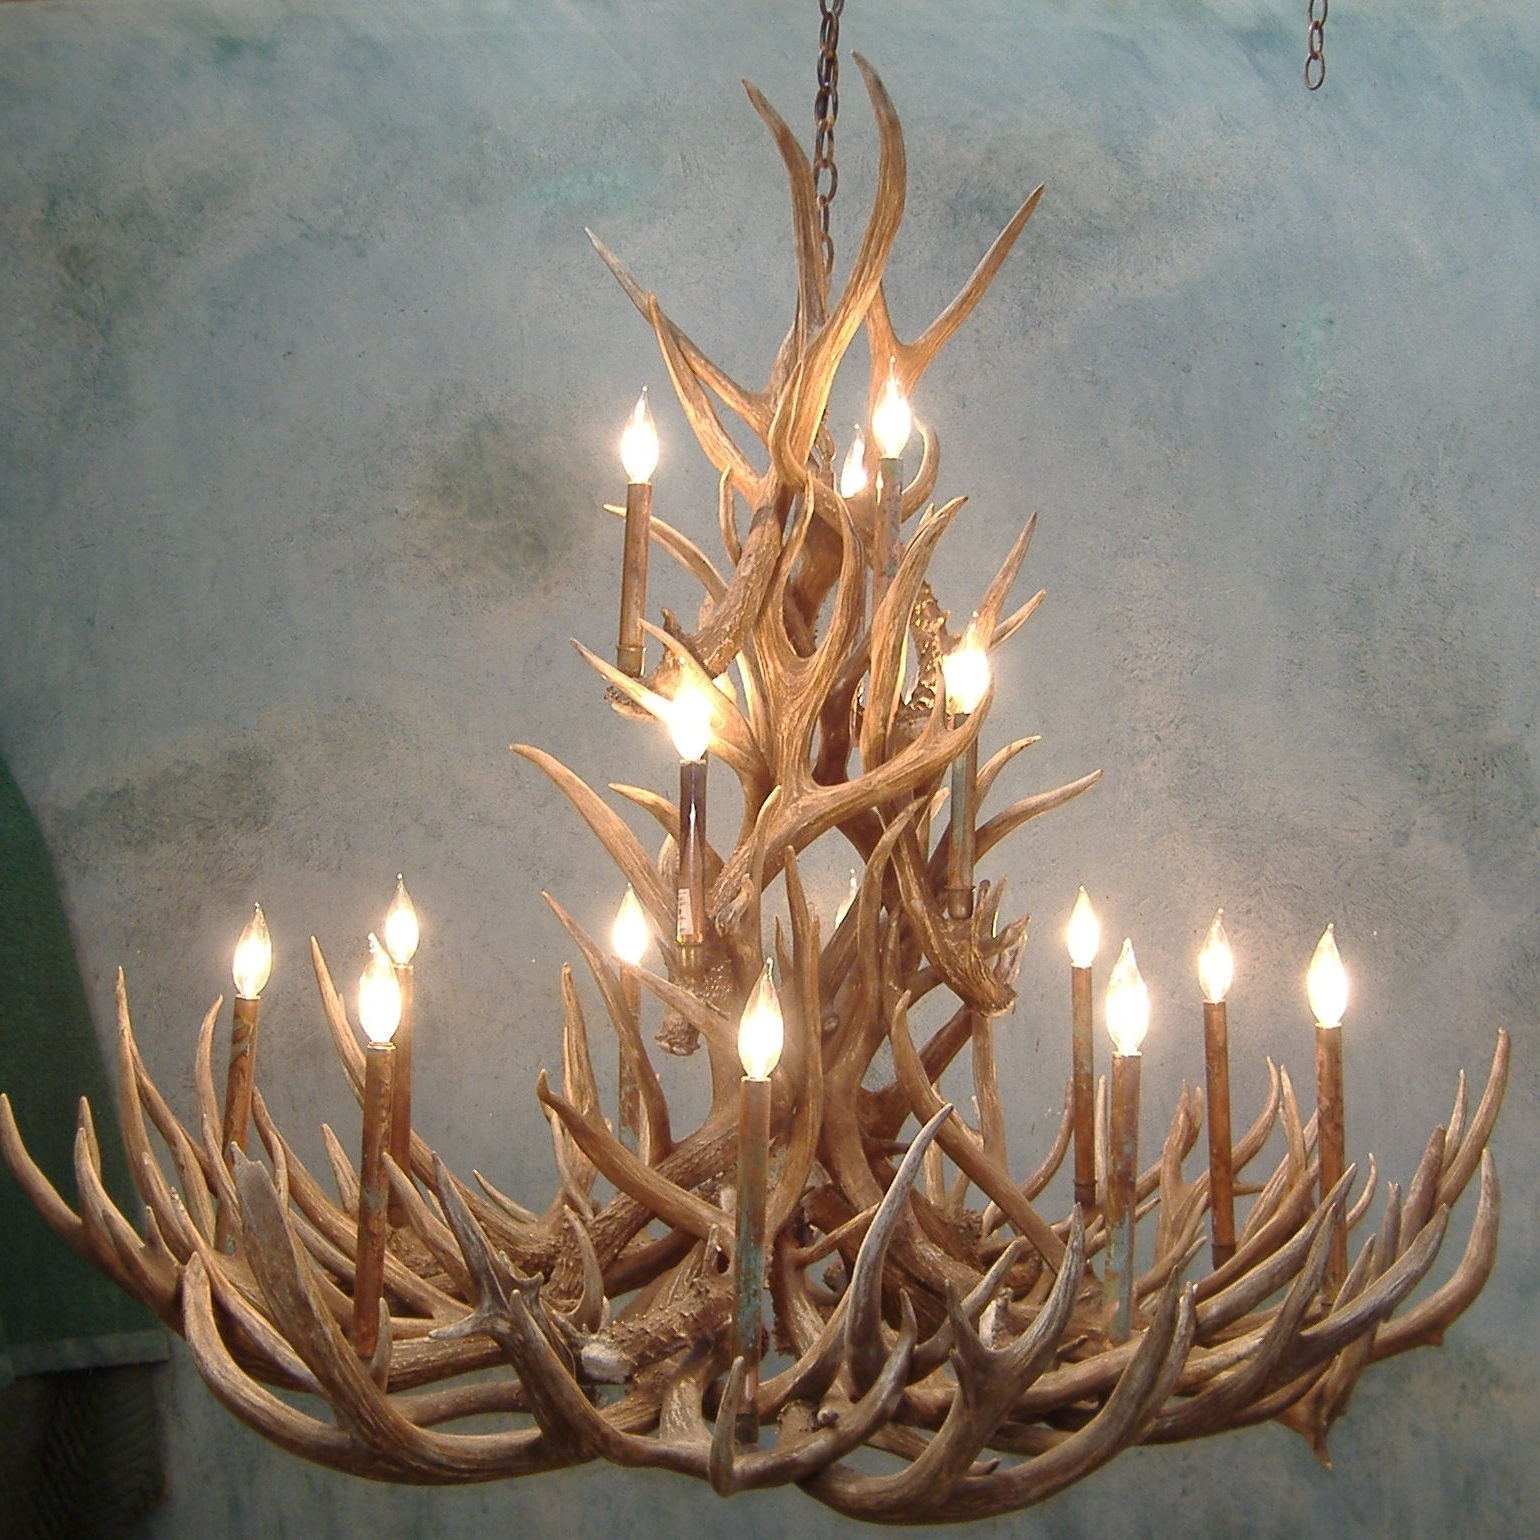 Antler Chandelier Intended For Trendy Spruce Mule Deer Antler Chandelier (Gallery 6 of 20)